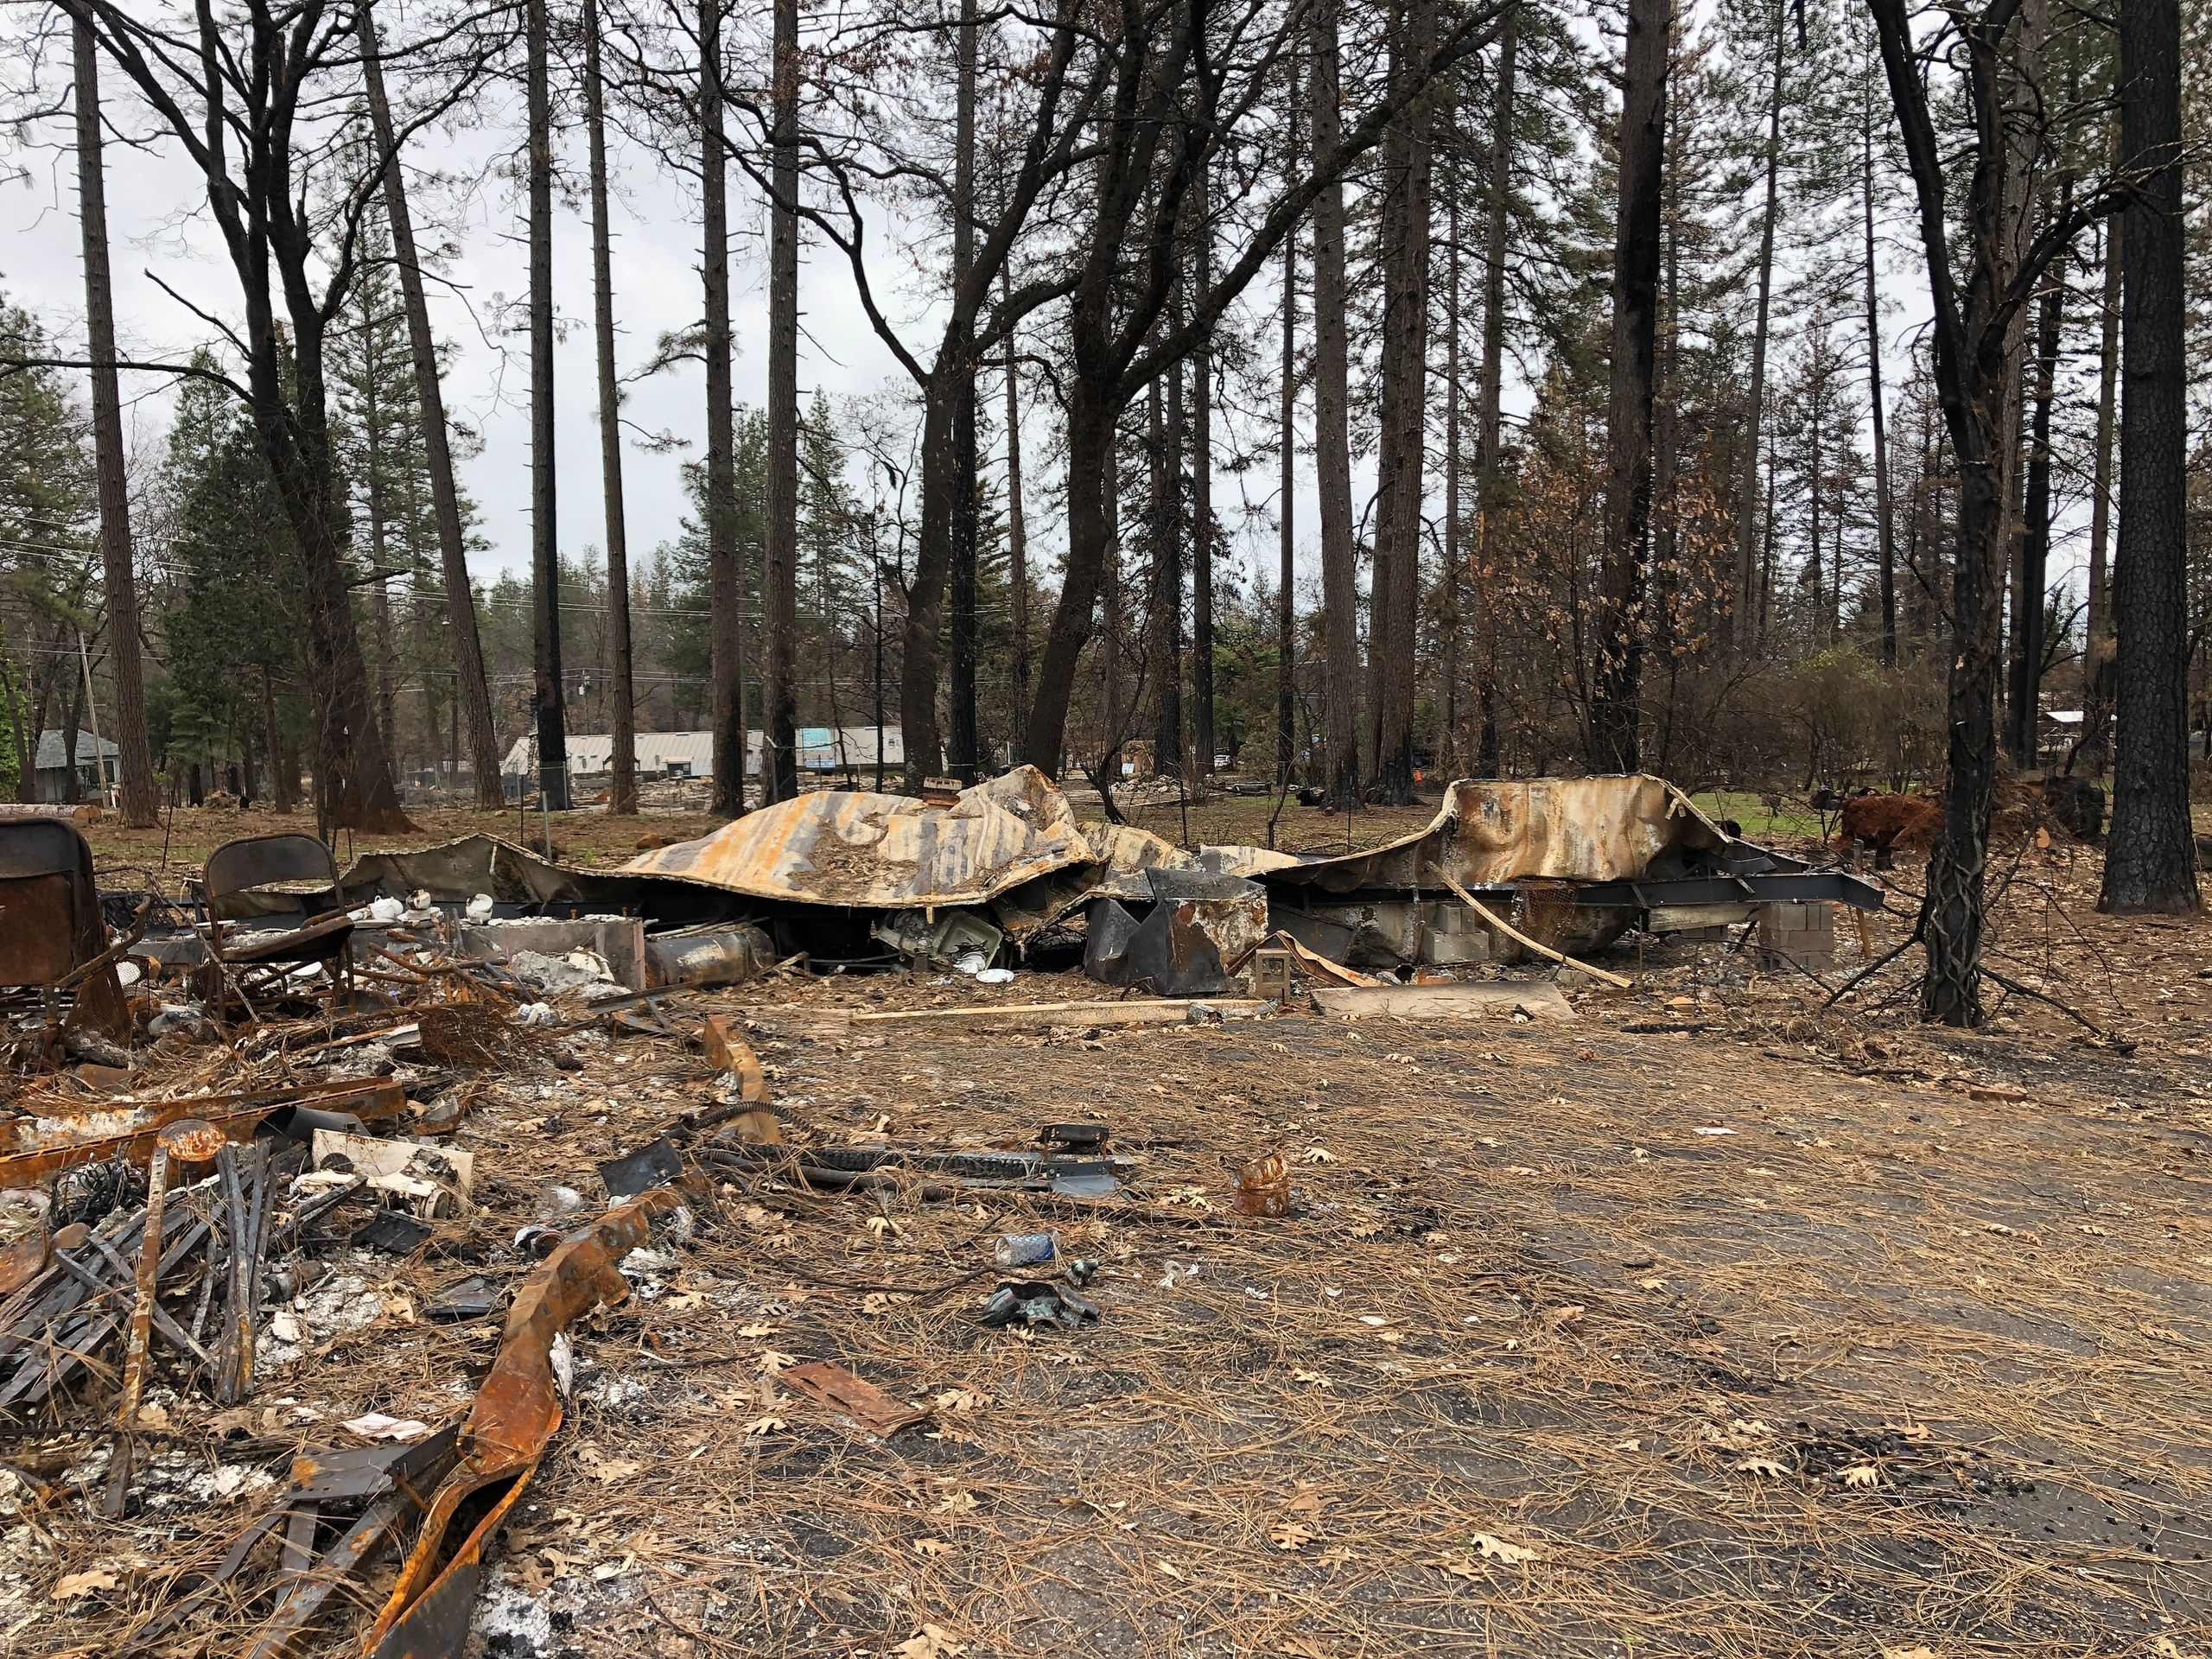 David's trailer, burned in the fire. — Paradise, Feb. 12